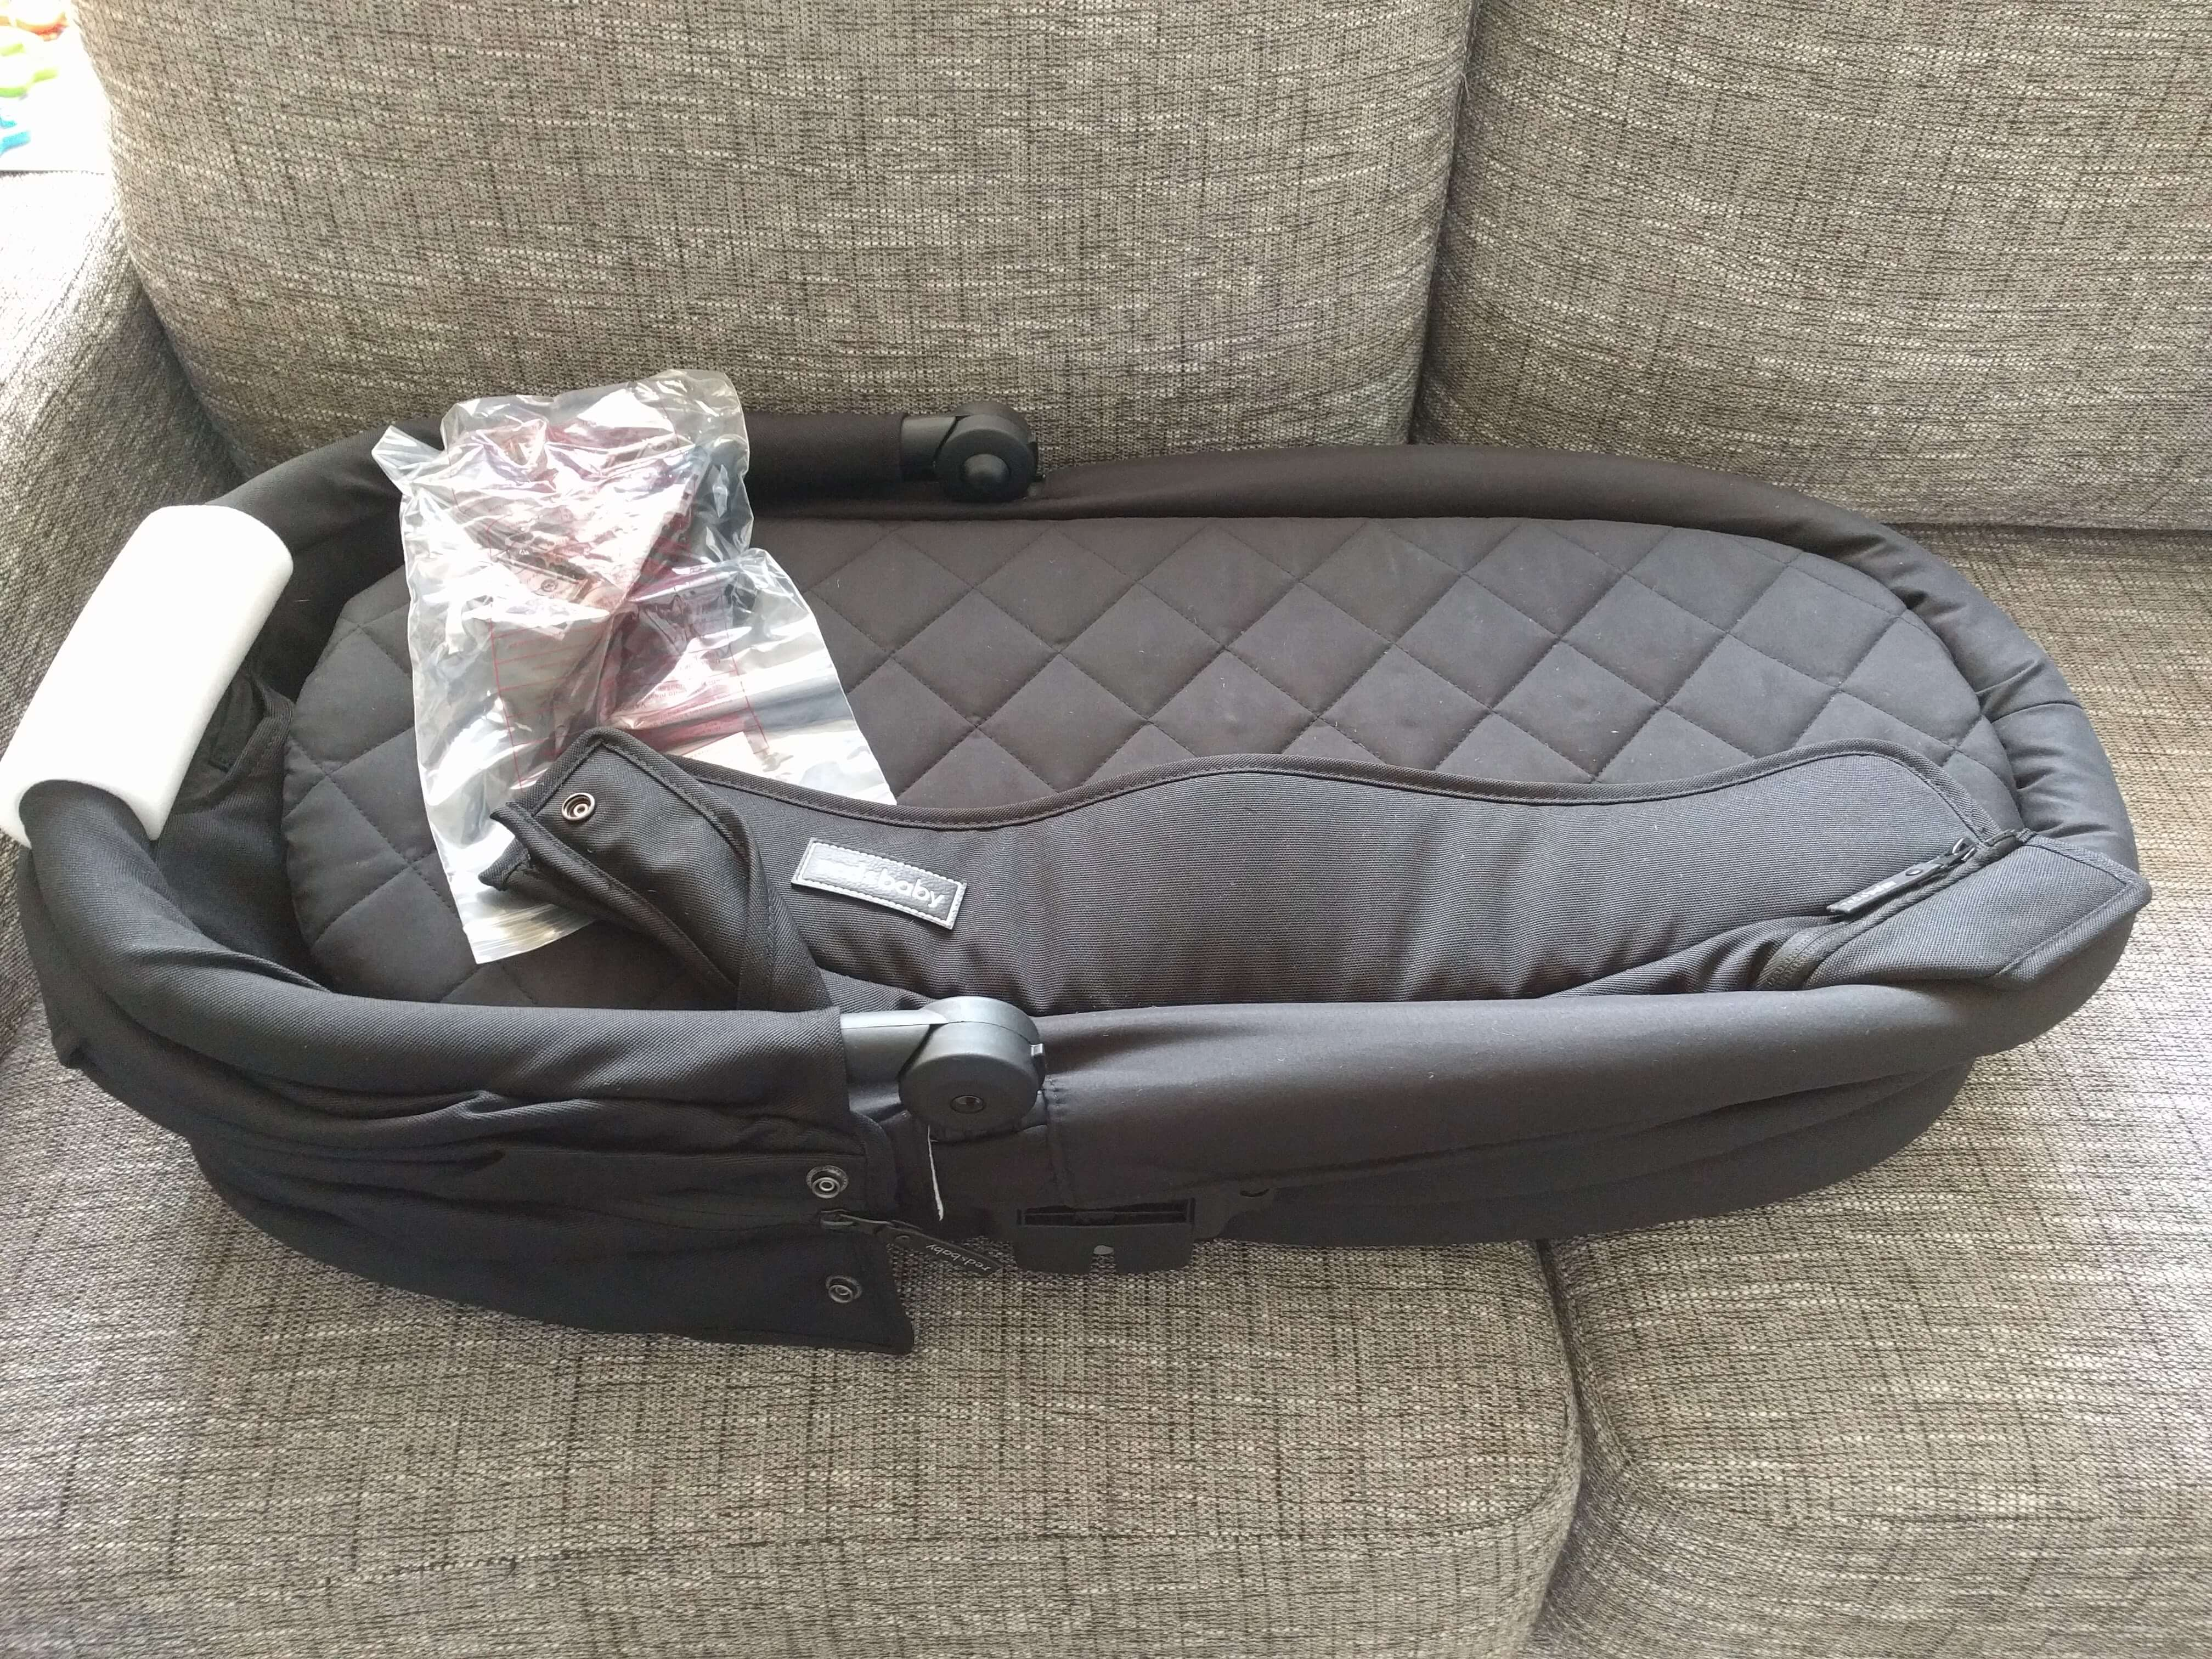 Redsbaby Jive review - bassinet disassembled